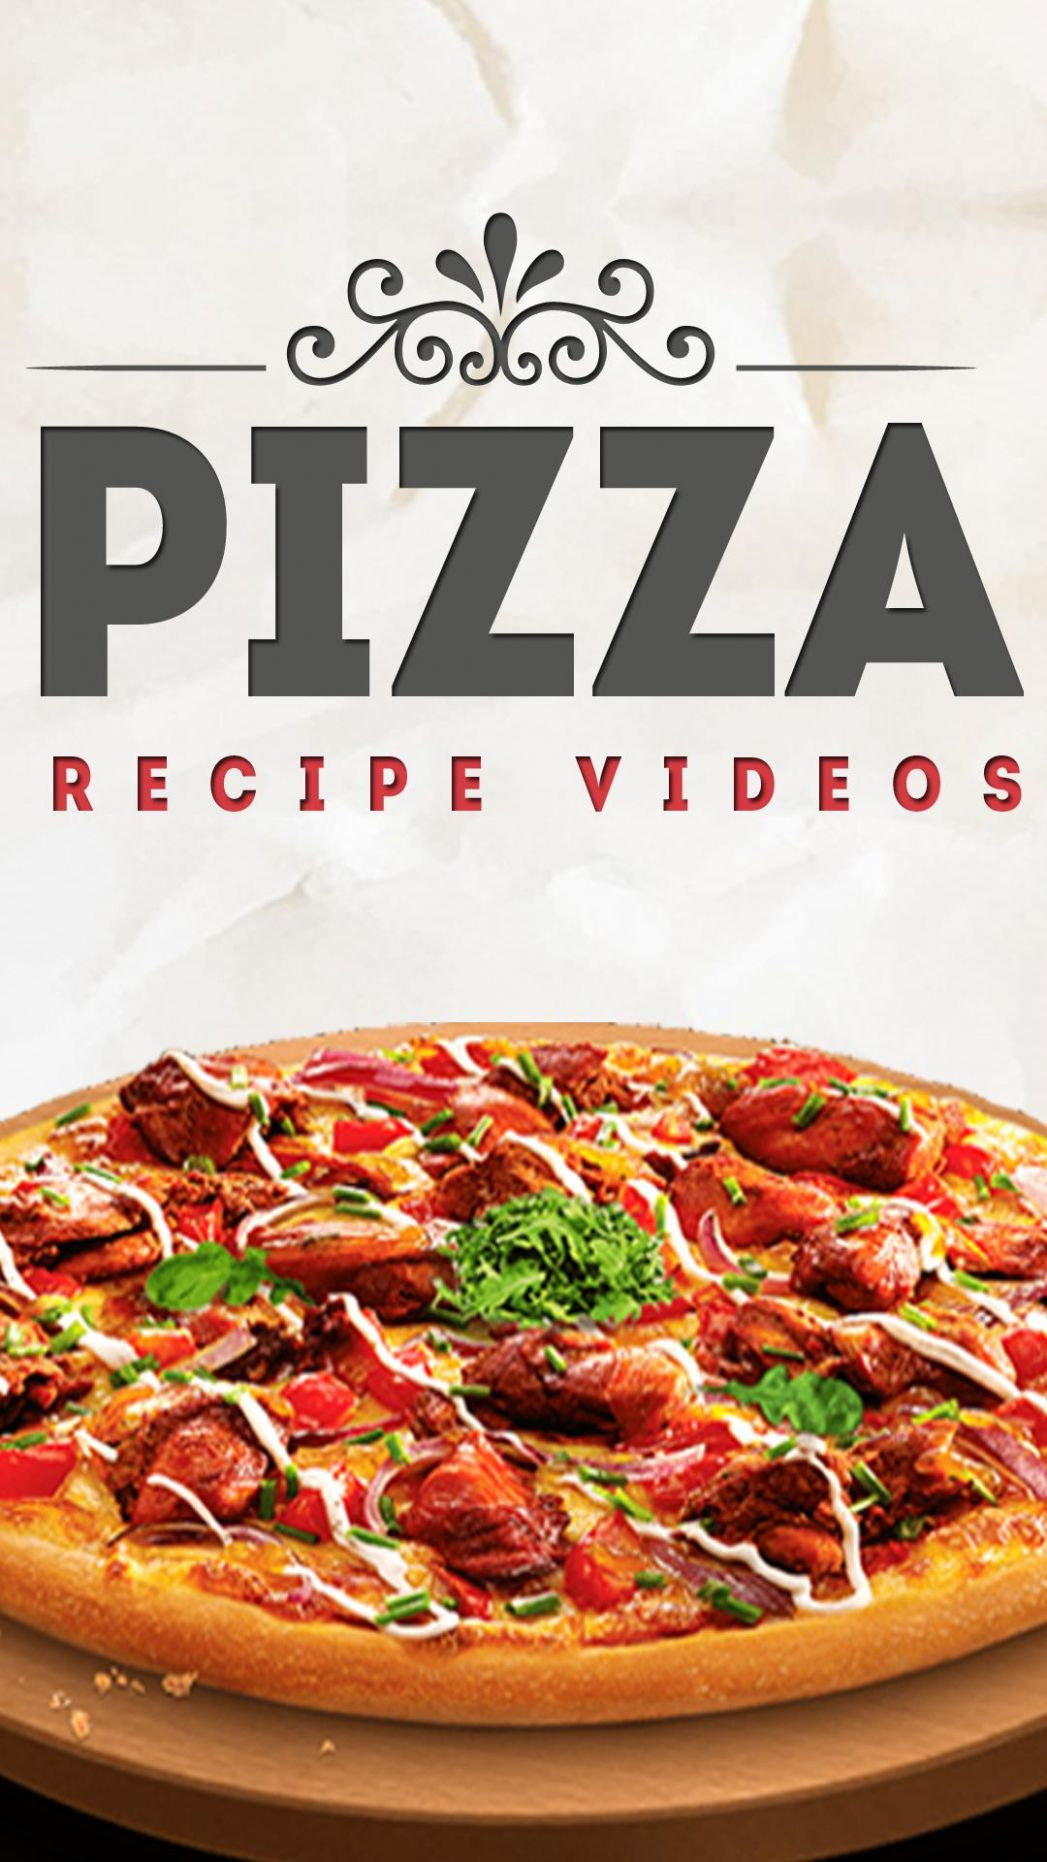 Pizza recipe for Android - APK Download - Pizza Recipes Video Download